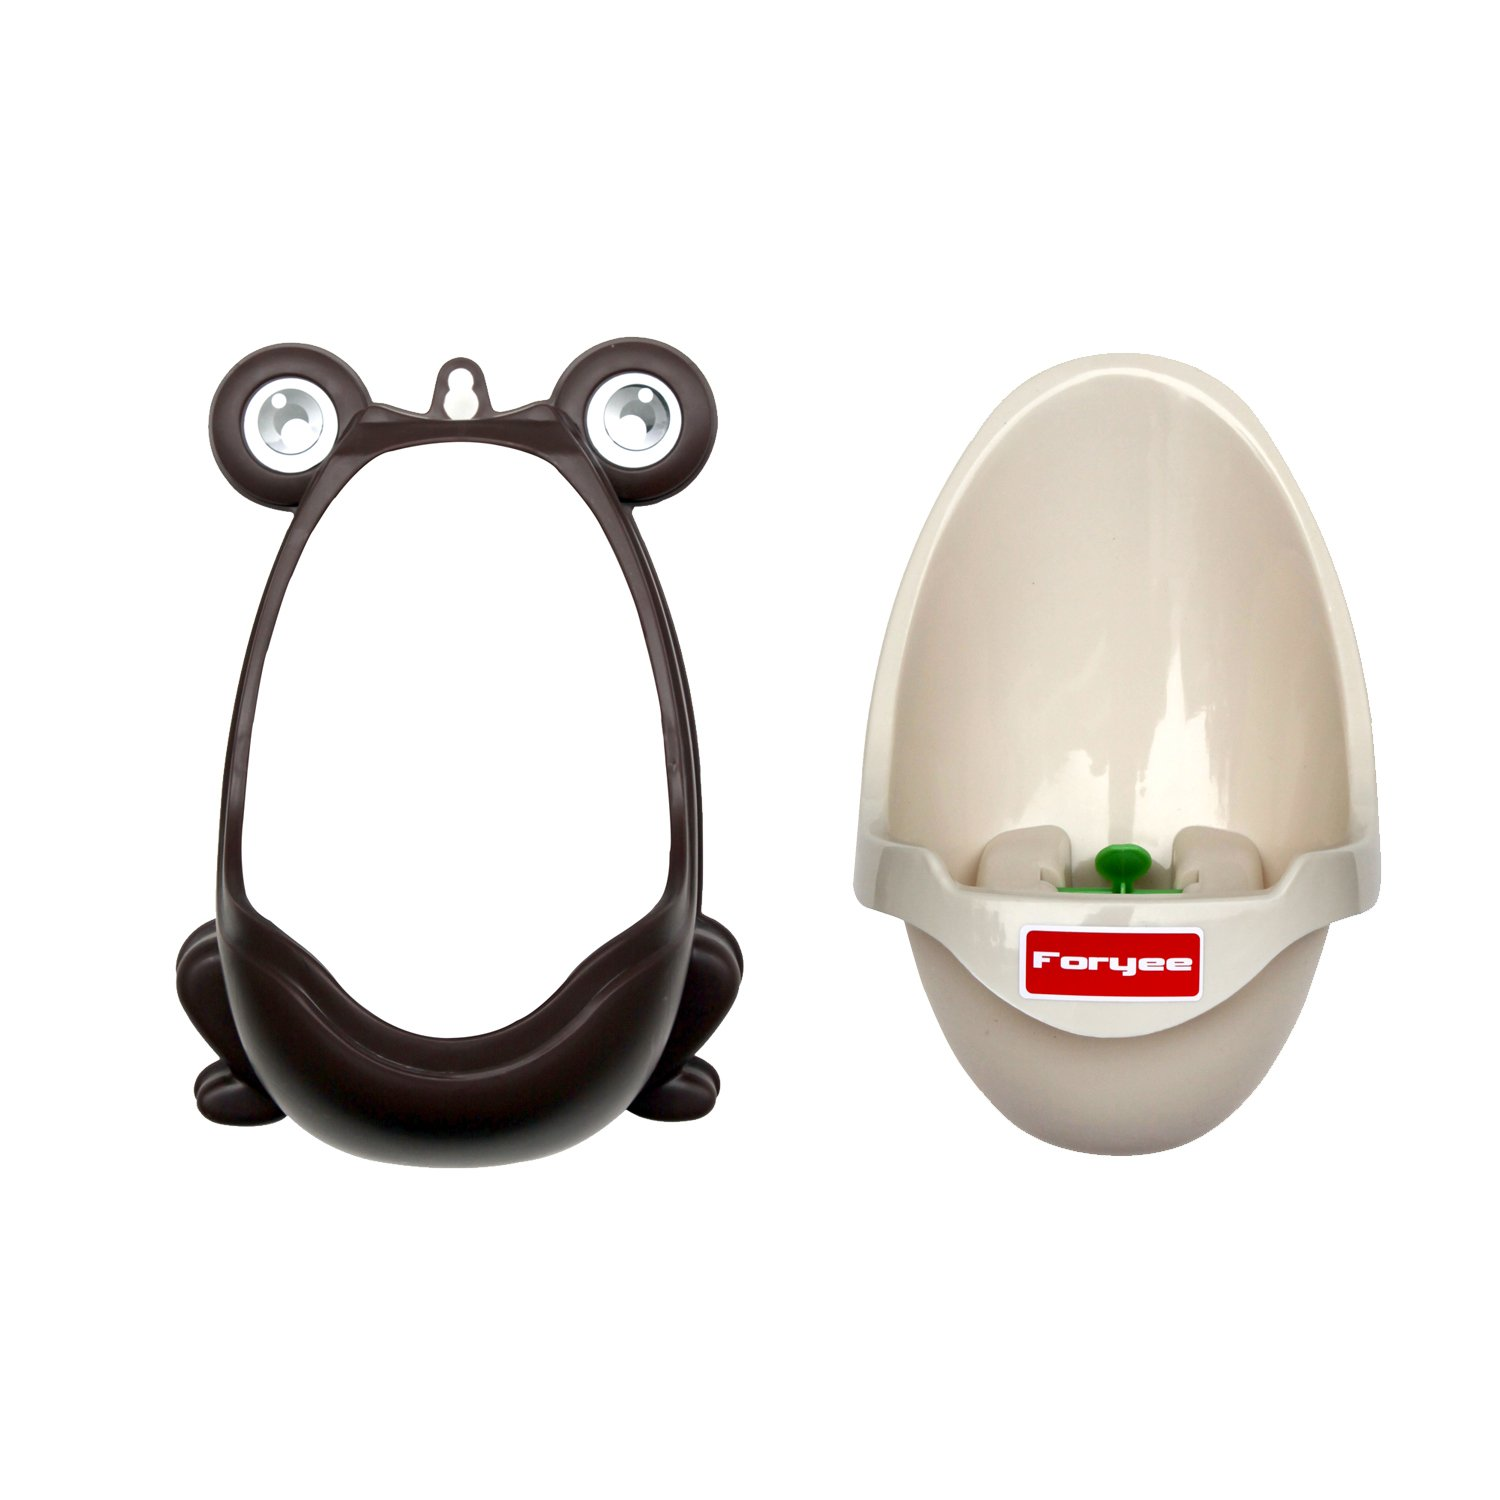 Foryee Cute Frog Potty Training Urinal for Boys with Funny Aiming Target Coffee